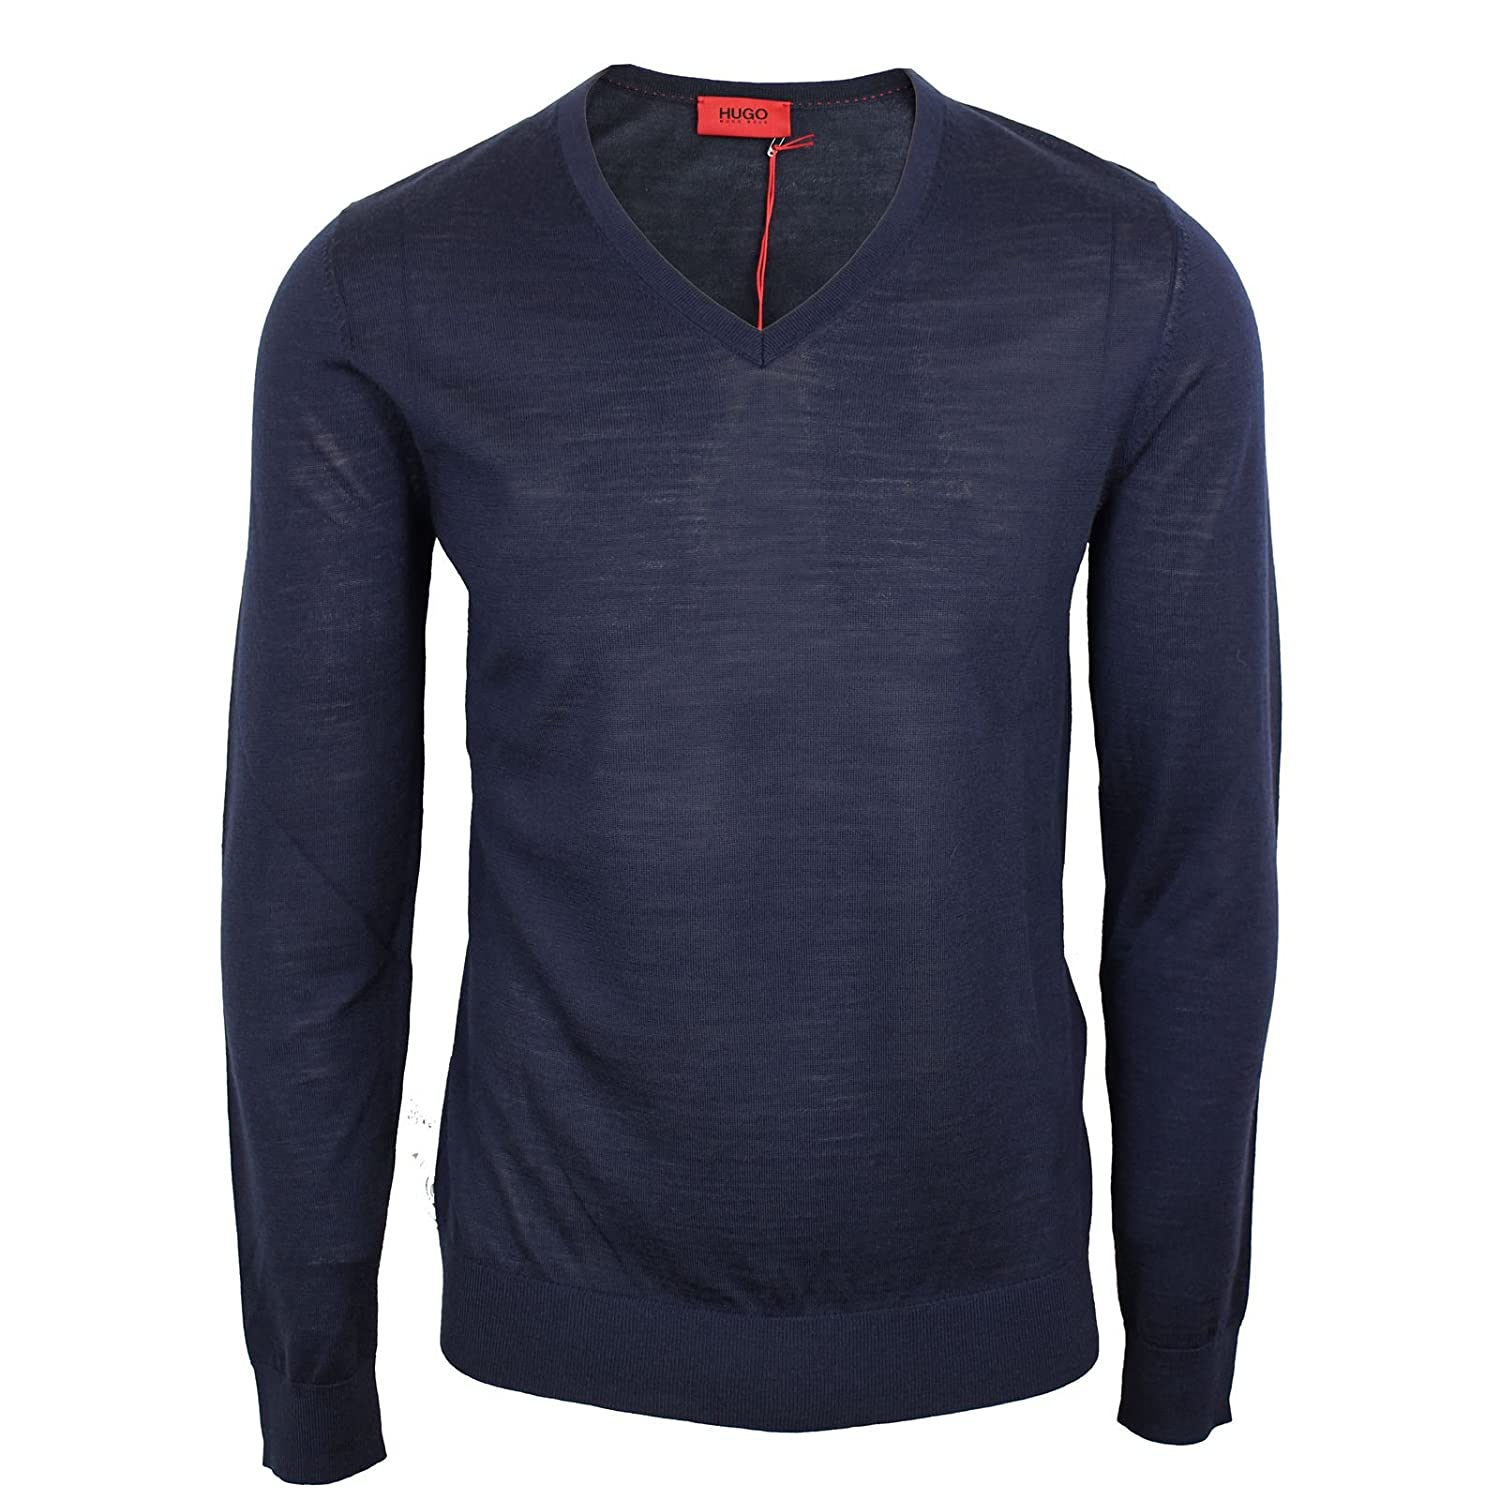 HUGO BOSS JUMPER SAN CARLO MENS NAVY KNIT